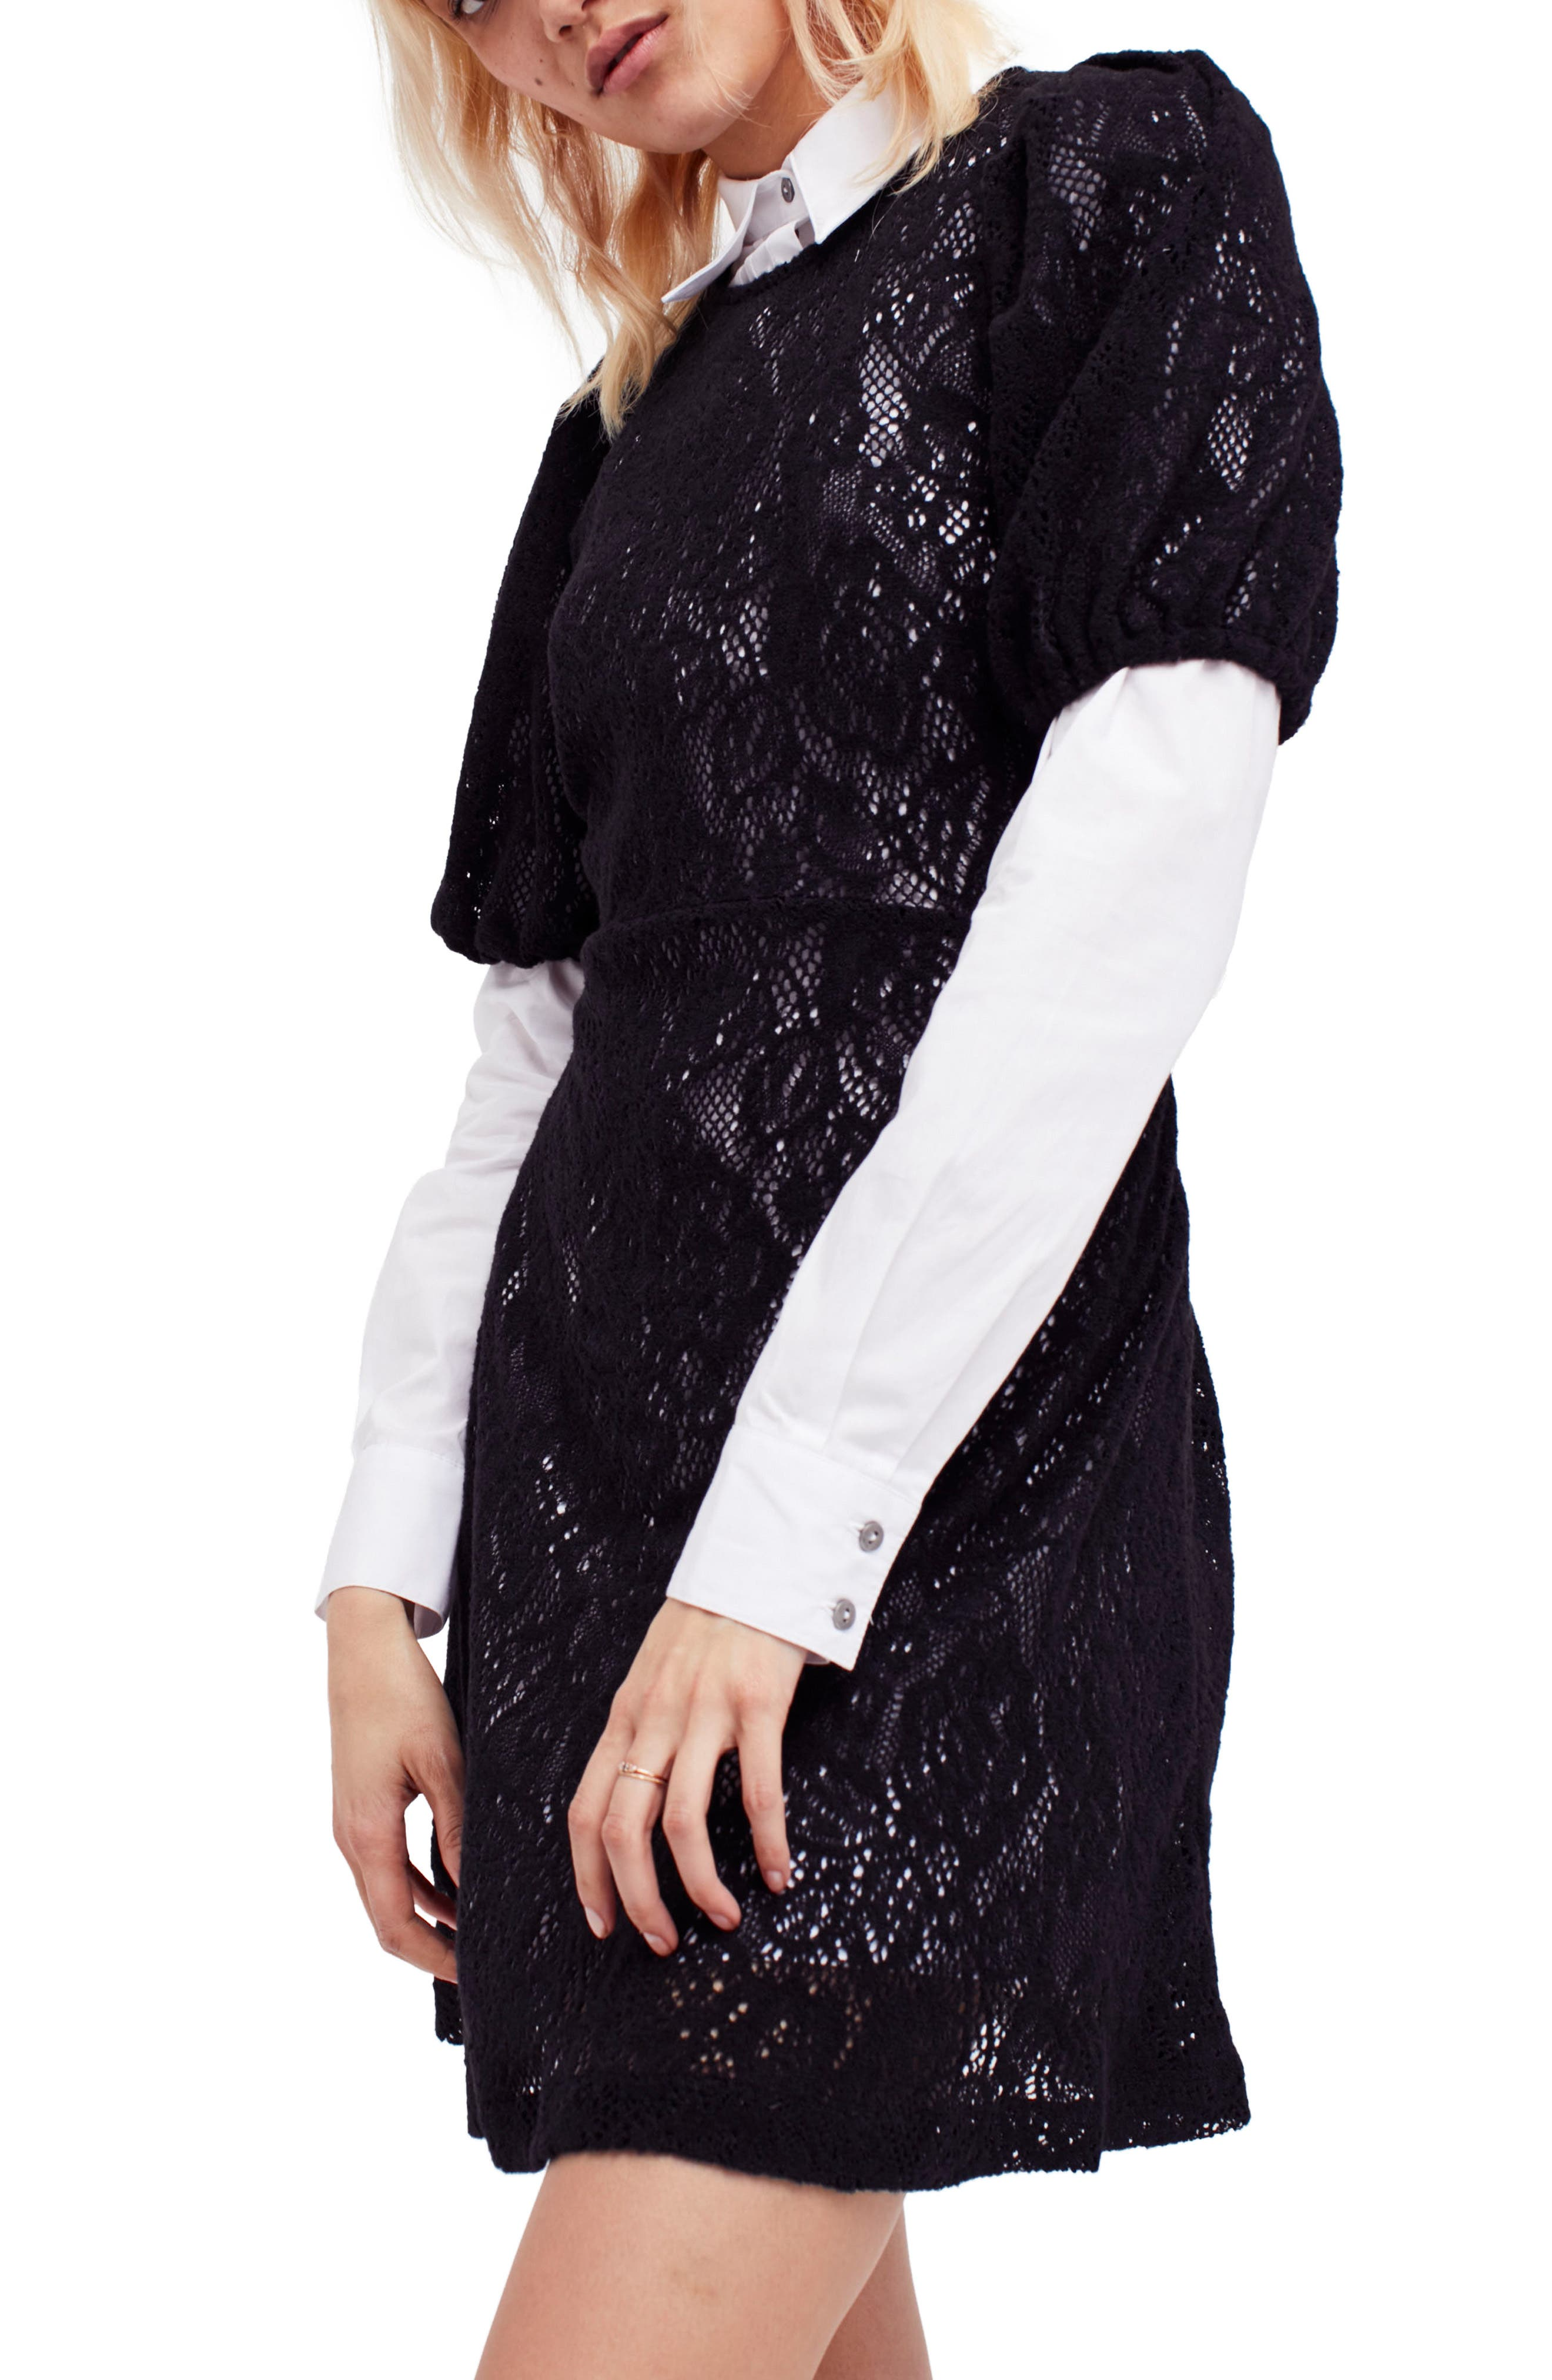 Pretty Princess Dress Shirtdress with Lace Overlay,                         Main,                         color, Black Combo